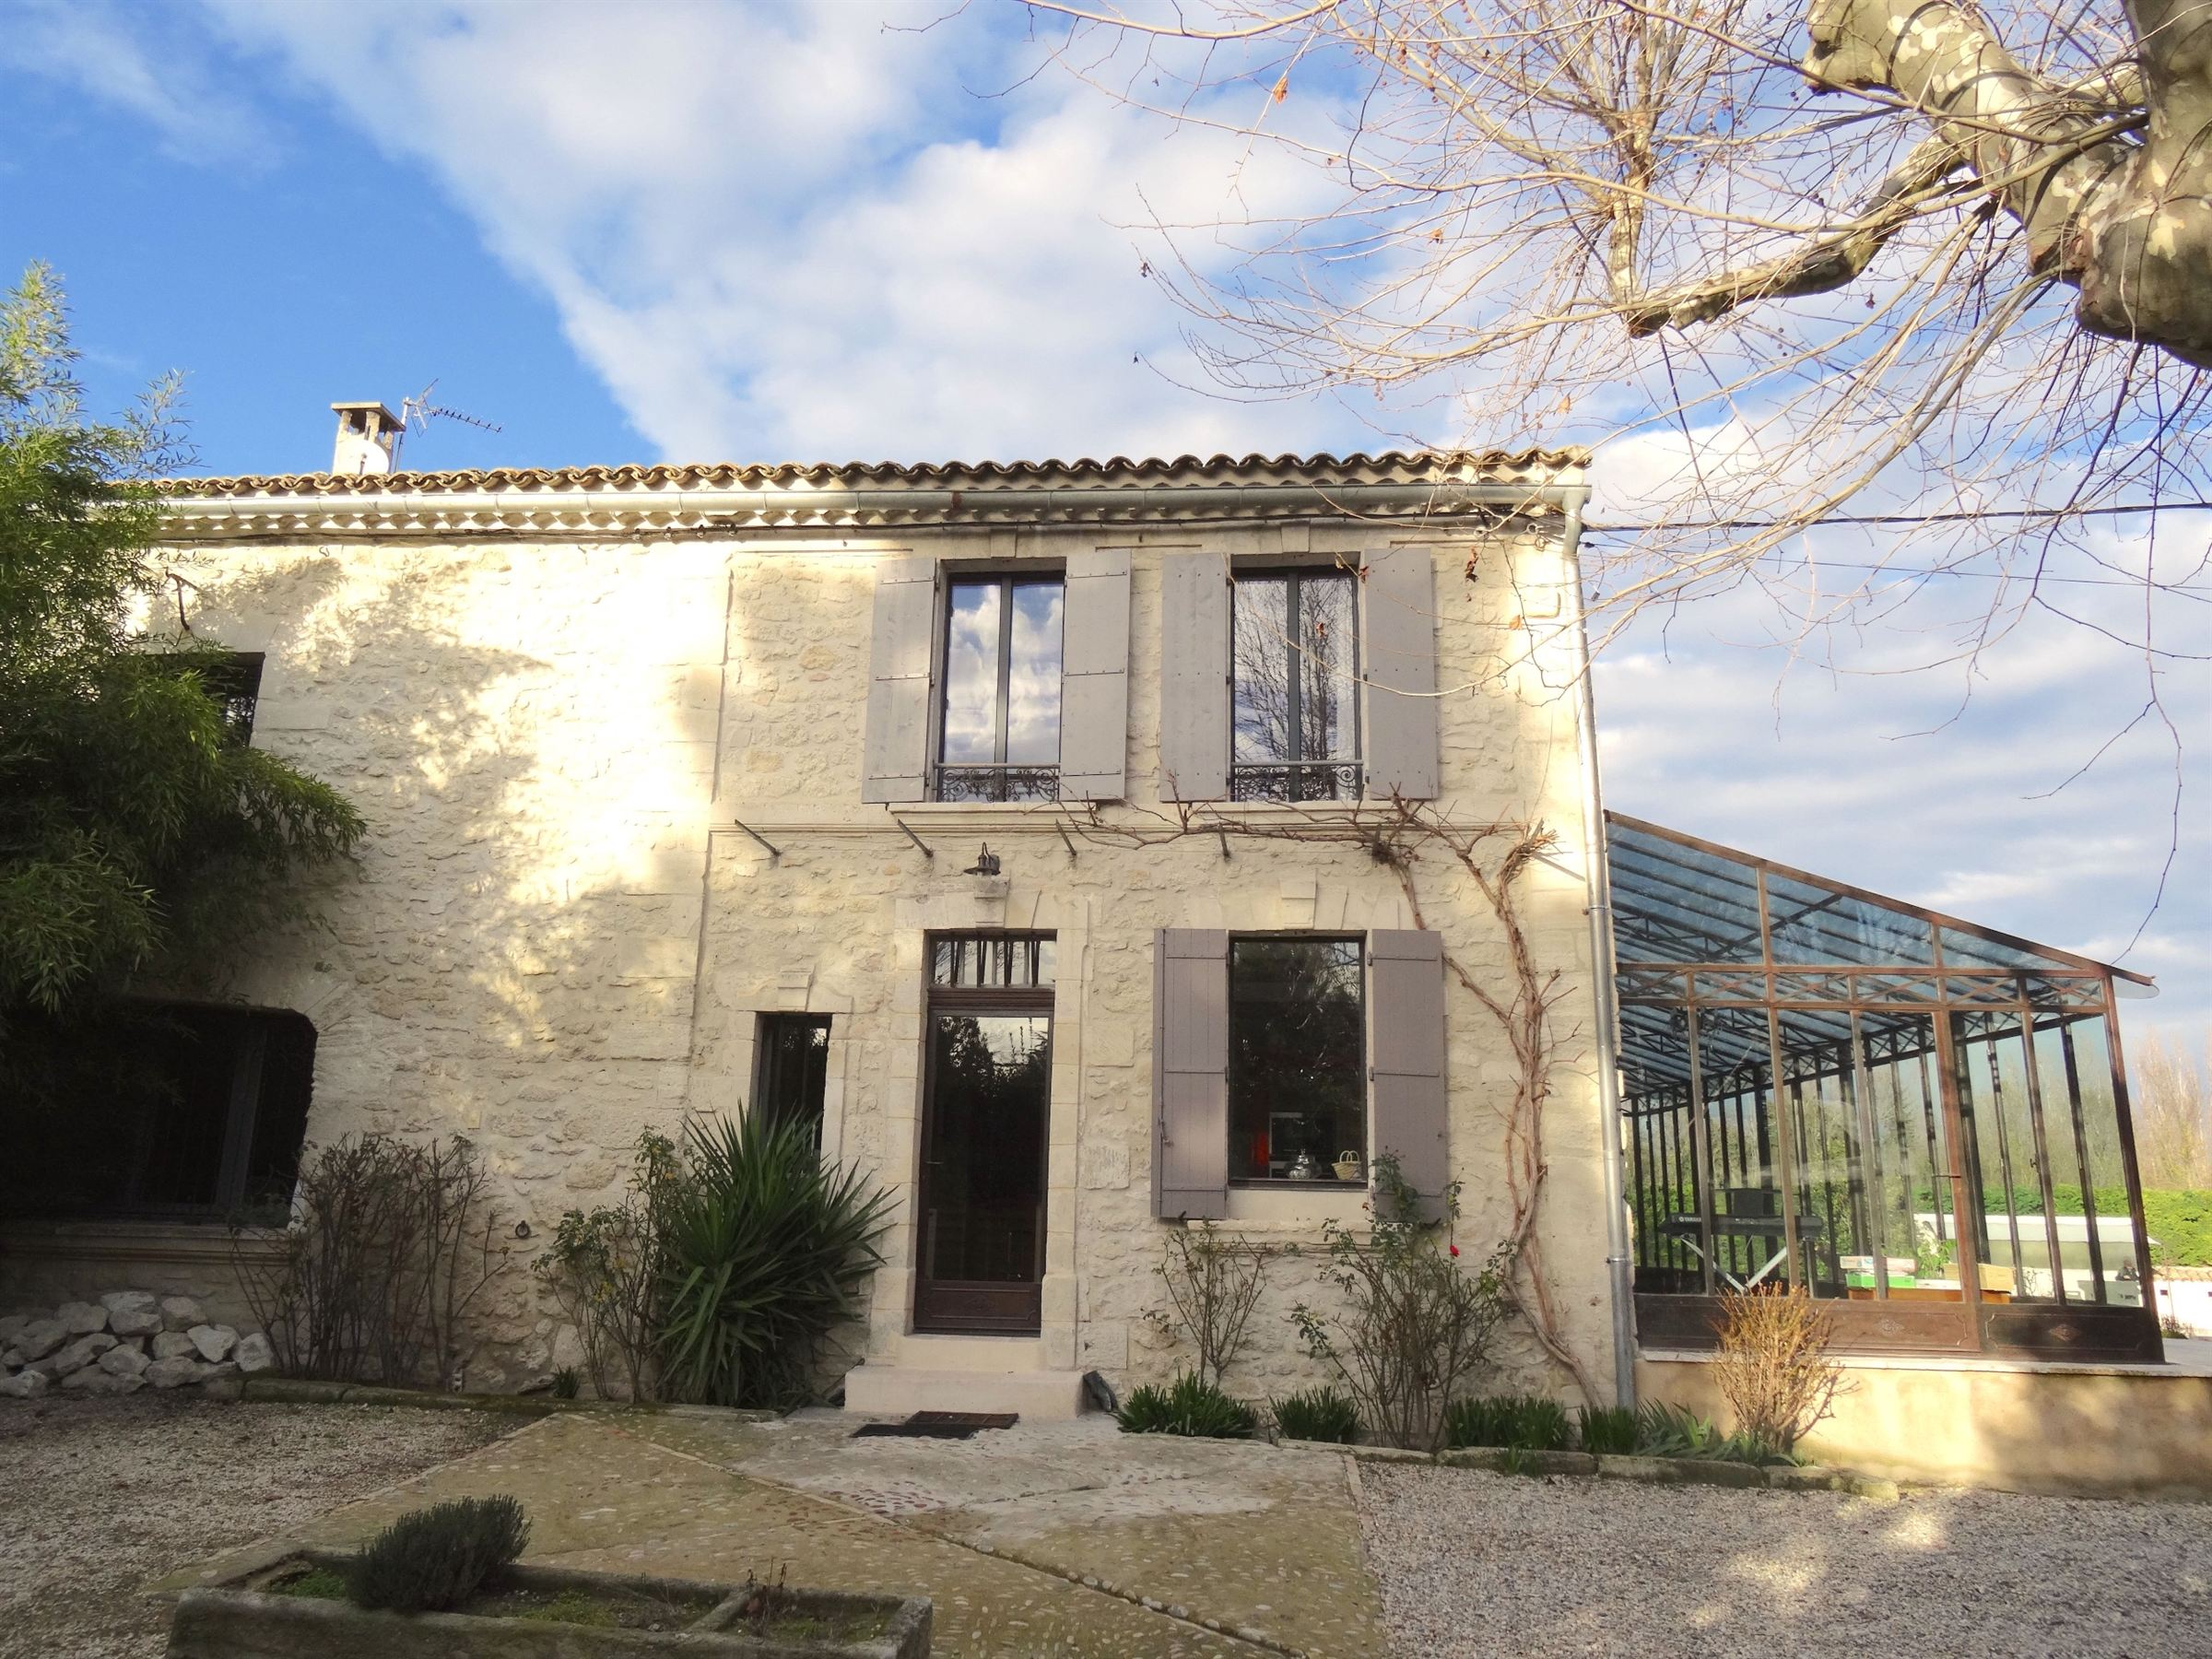 Property For Sale at Renovated farmhouse located in Avignon, close to the city center